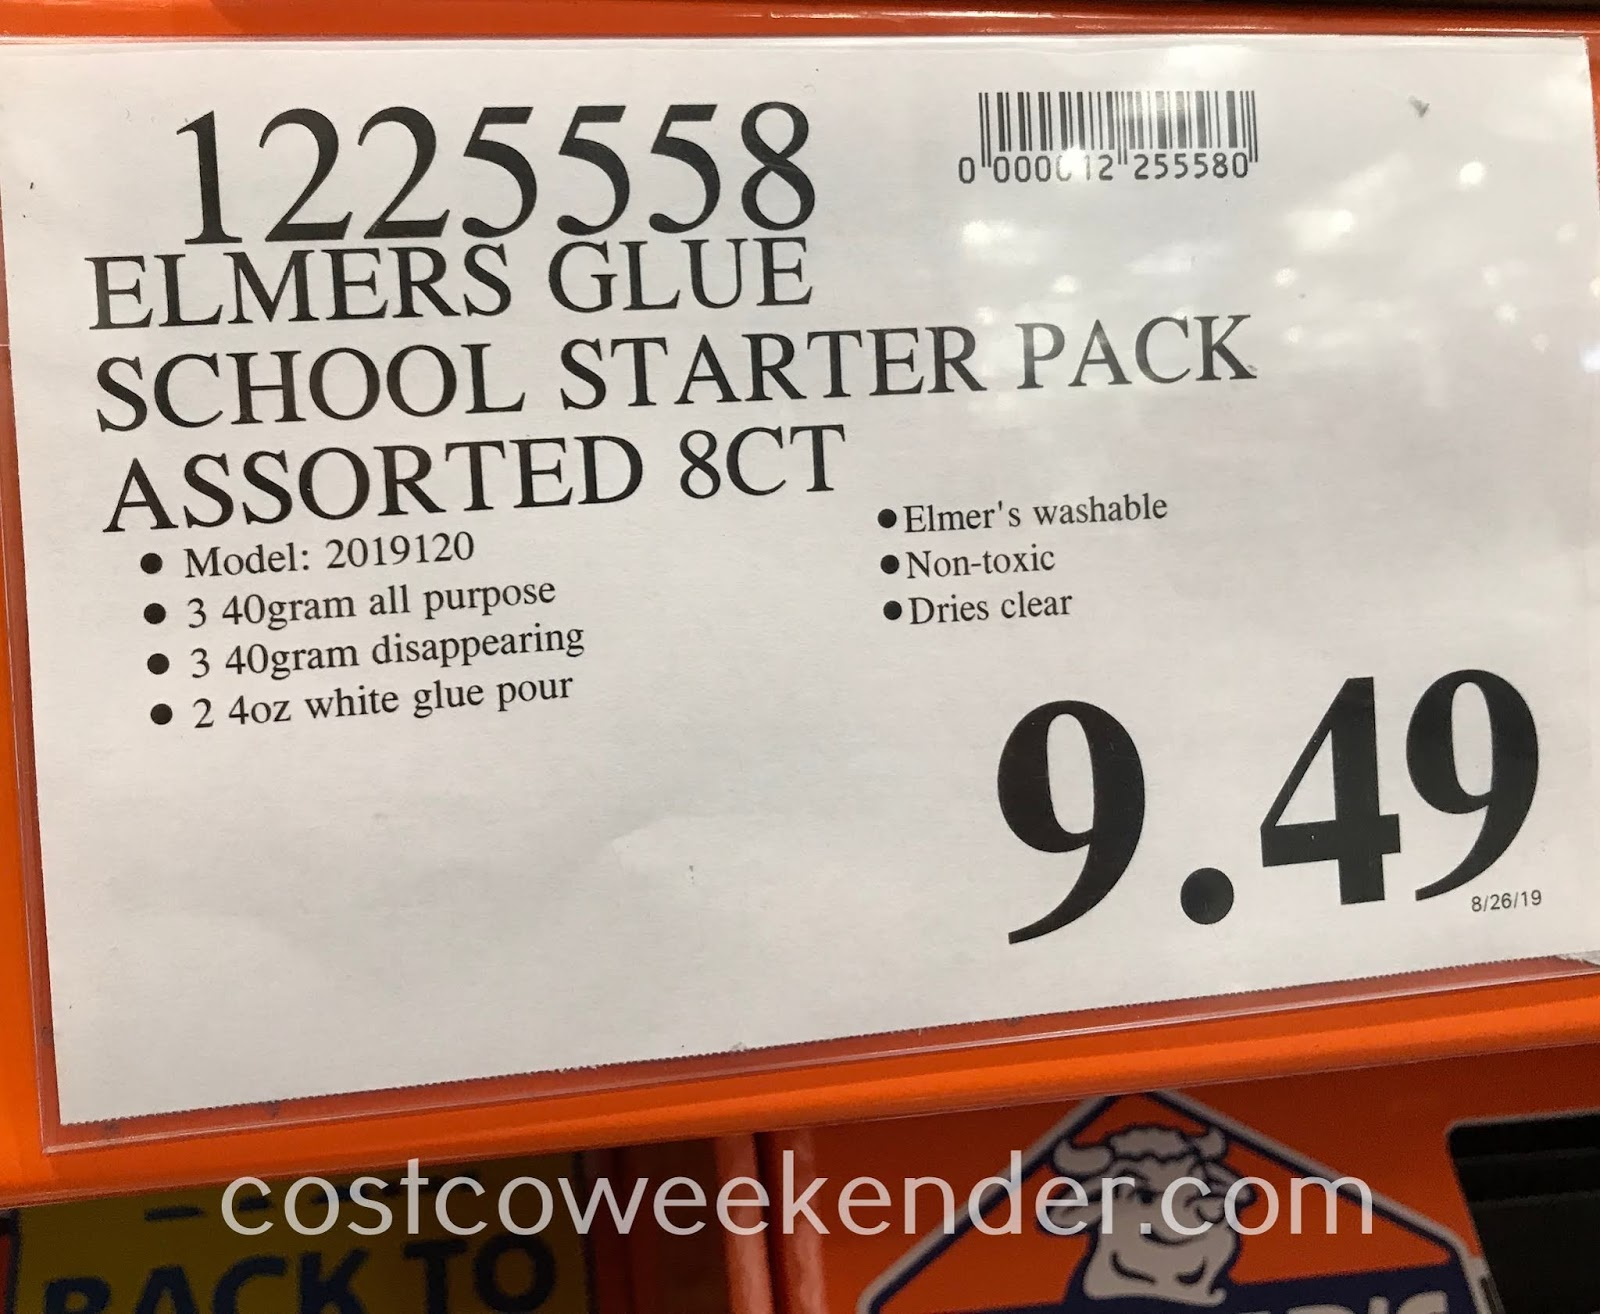 Deal for the Elmer's Glue School Starter Pack at Costco